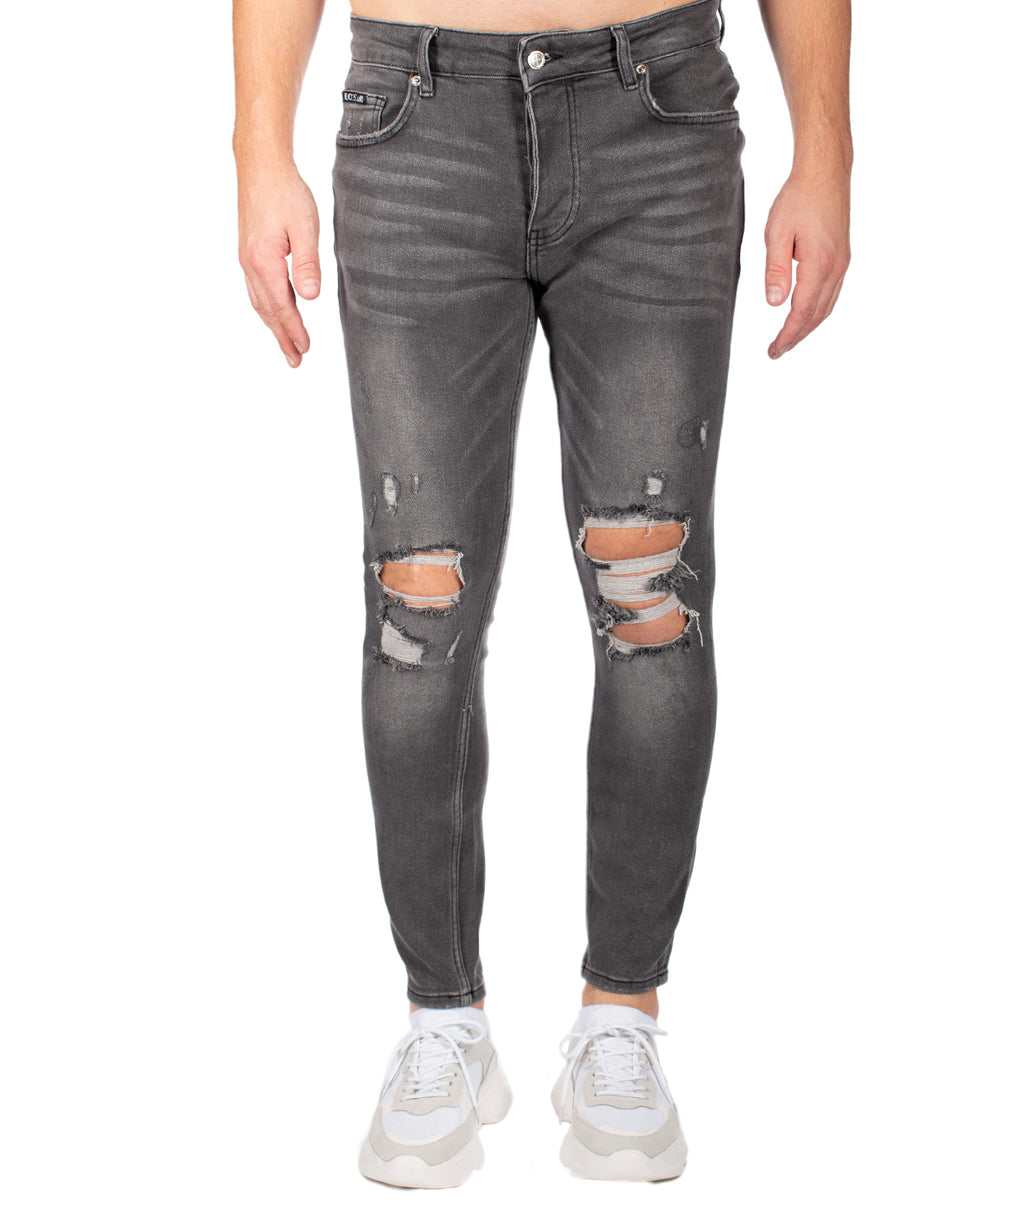 DESTROYED GREY JEANS - Vaarora